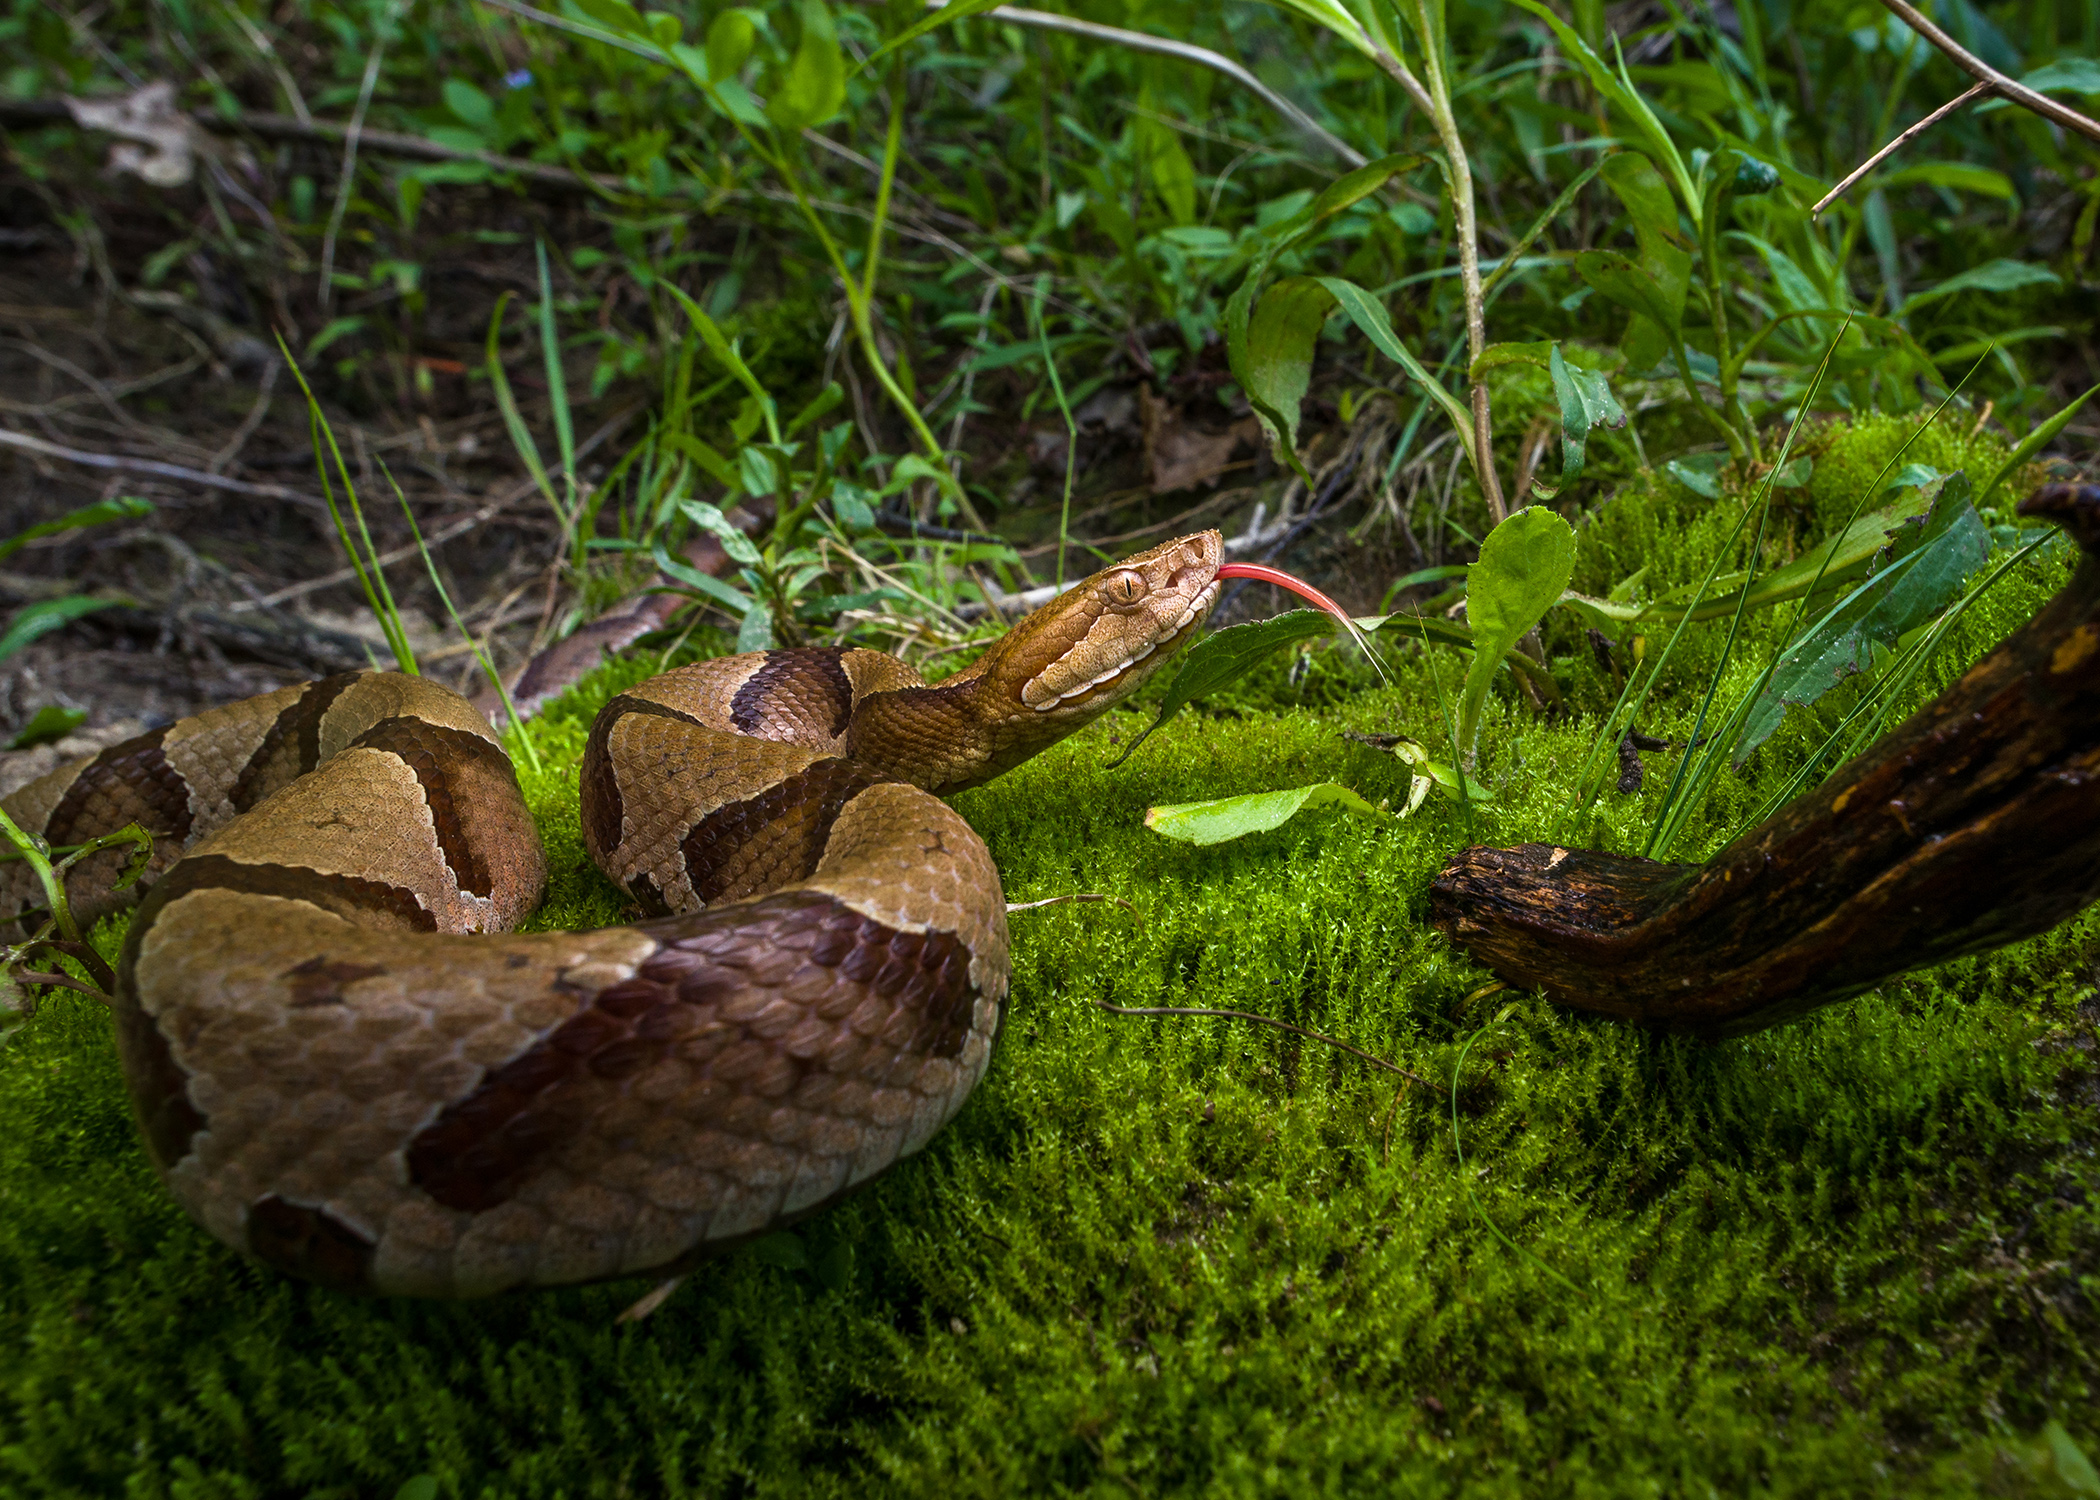 Snake encounters increase during summer months | Mississippi